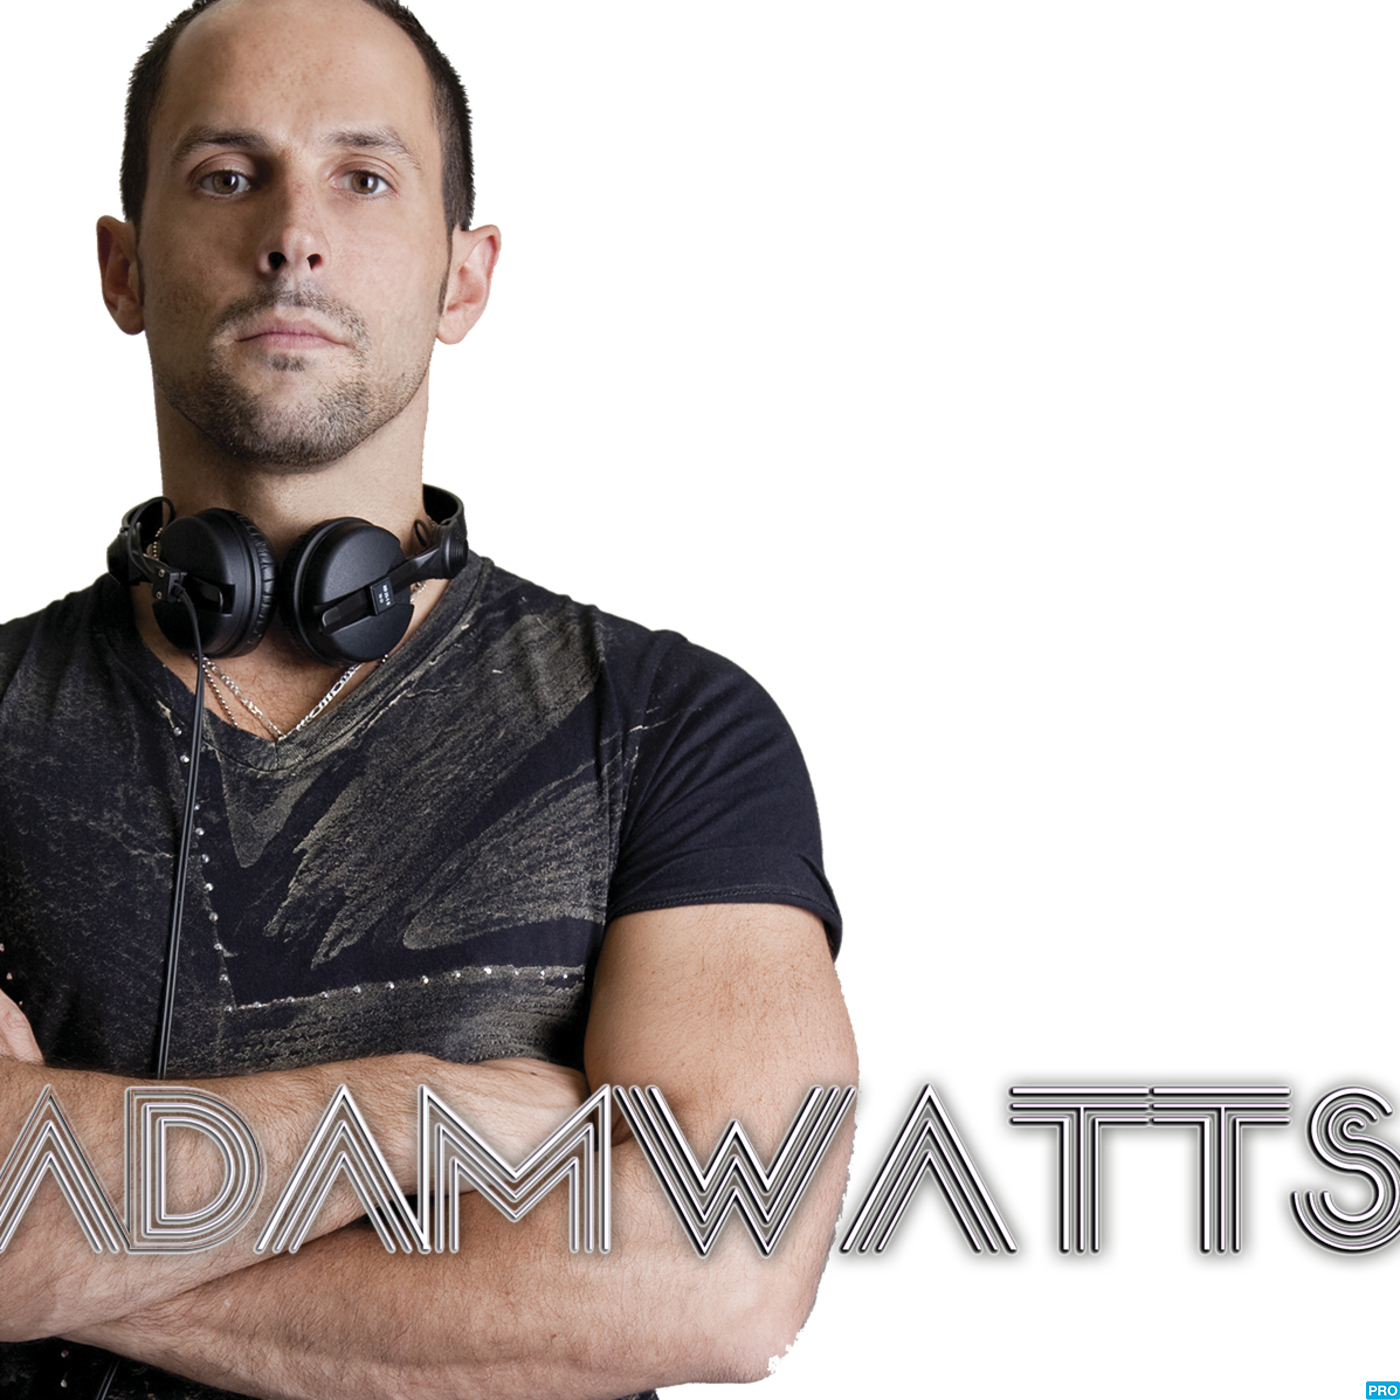 DJ Adam Watts' Podcast